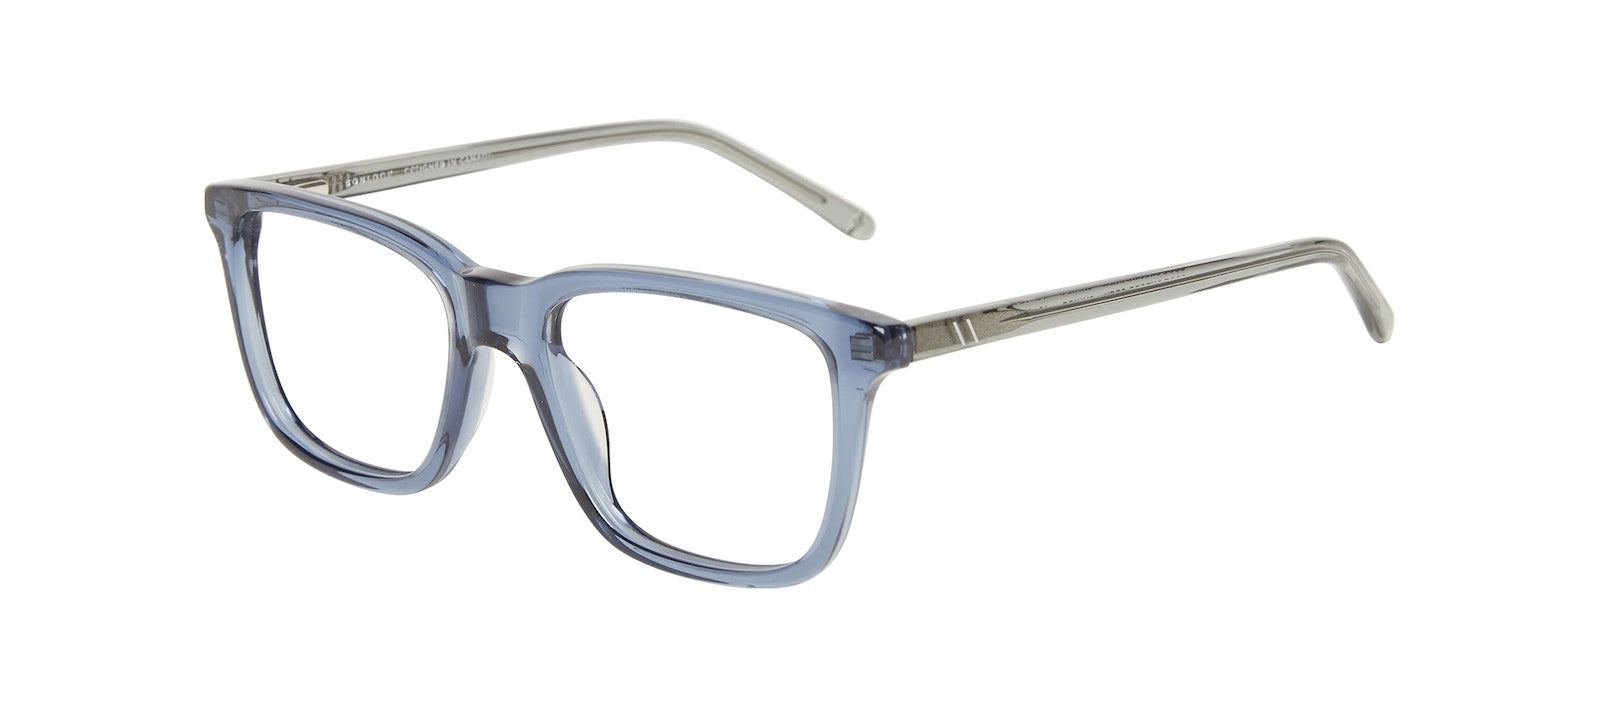 Affordable Fashion Glasses Square Eyeglasses Kids Code Junior Oxford Grey Tilt